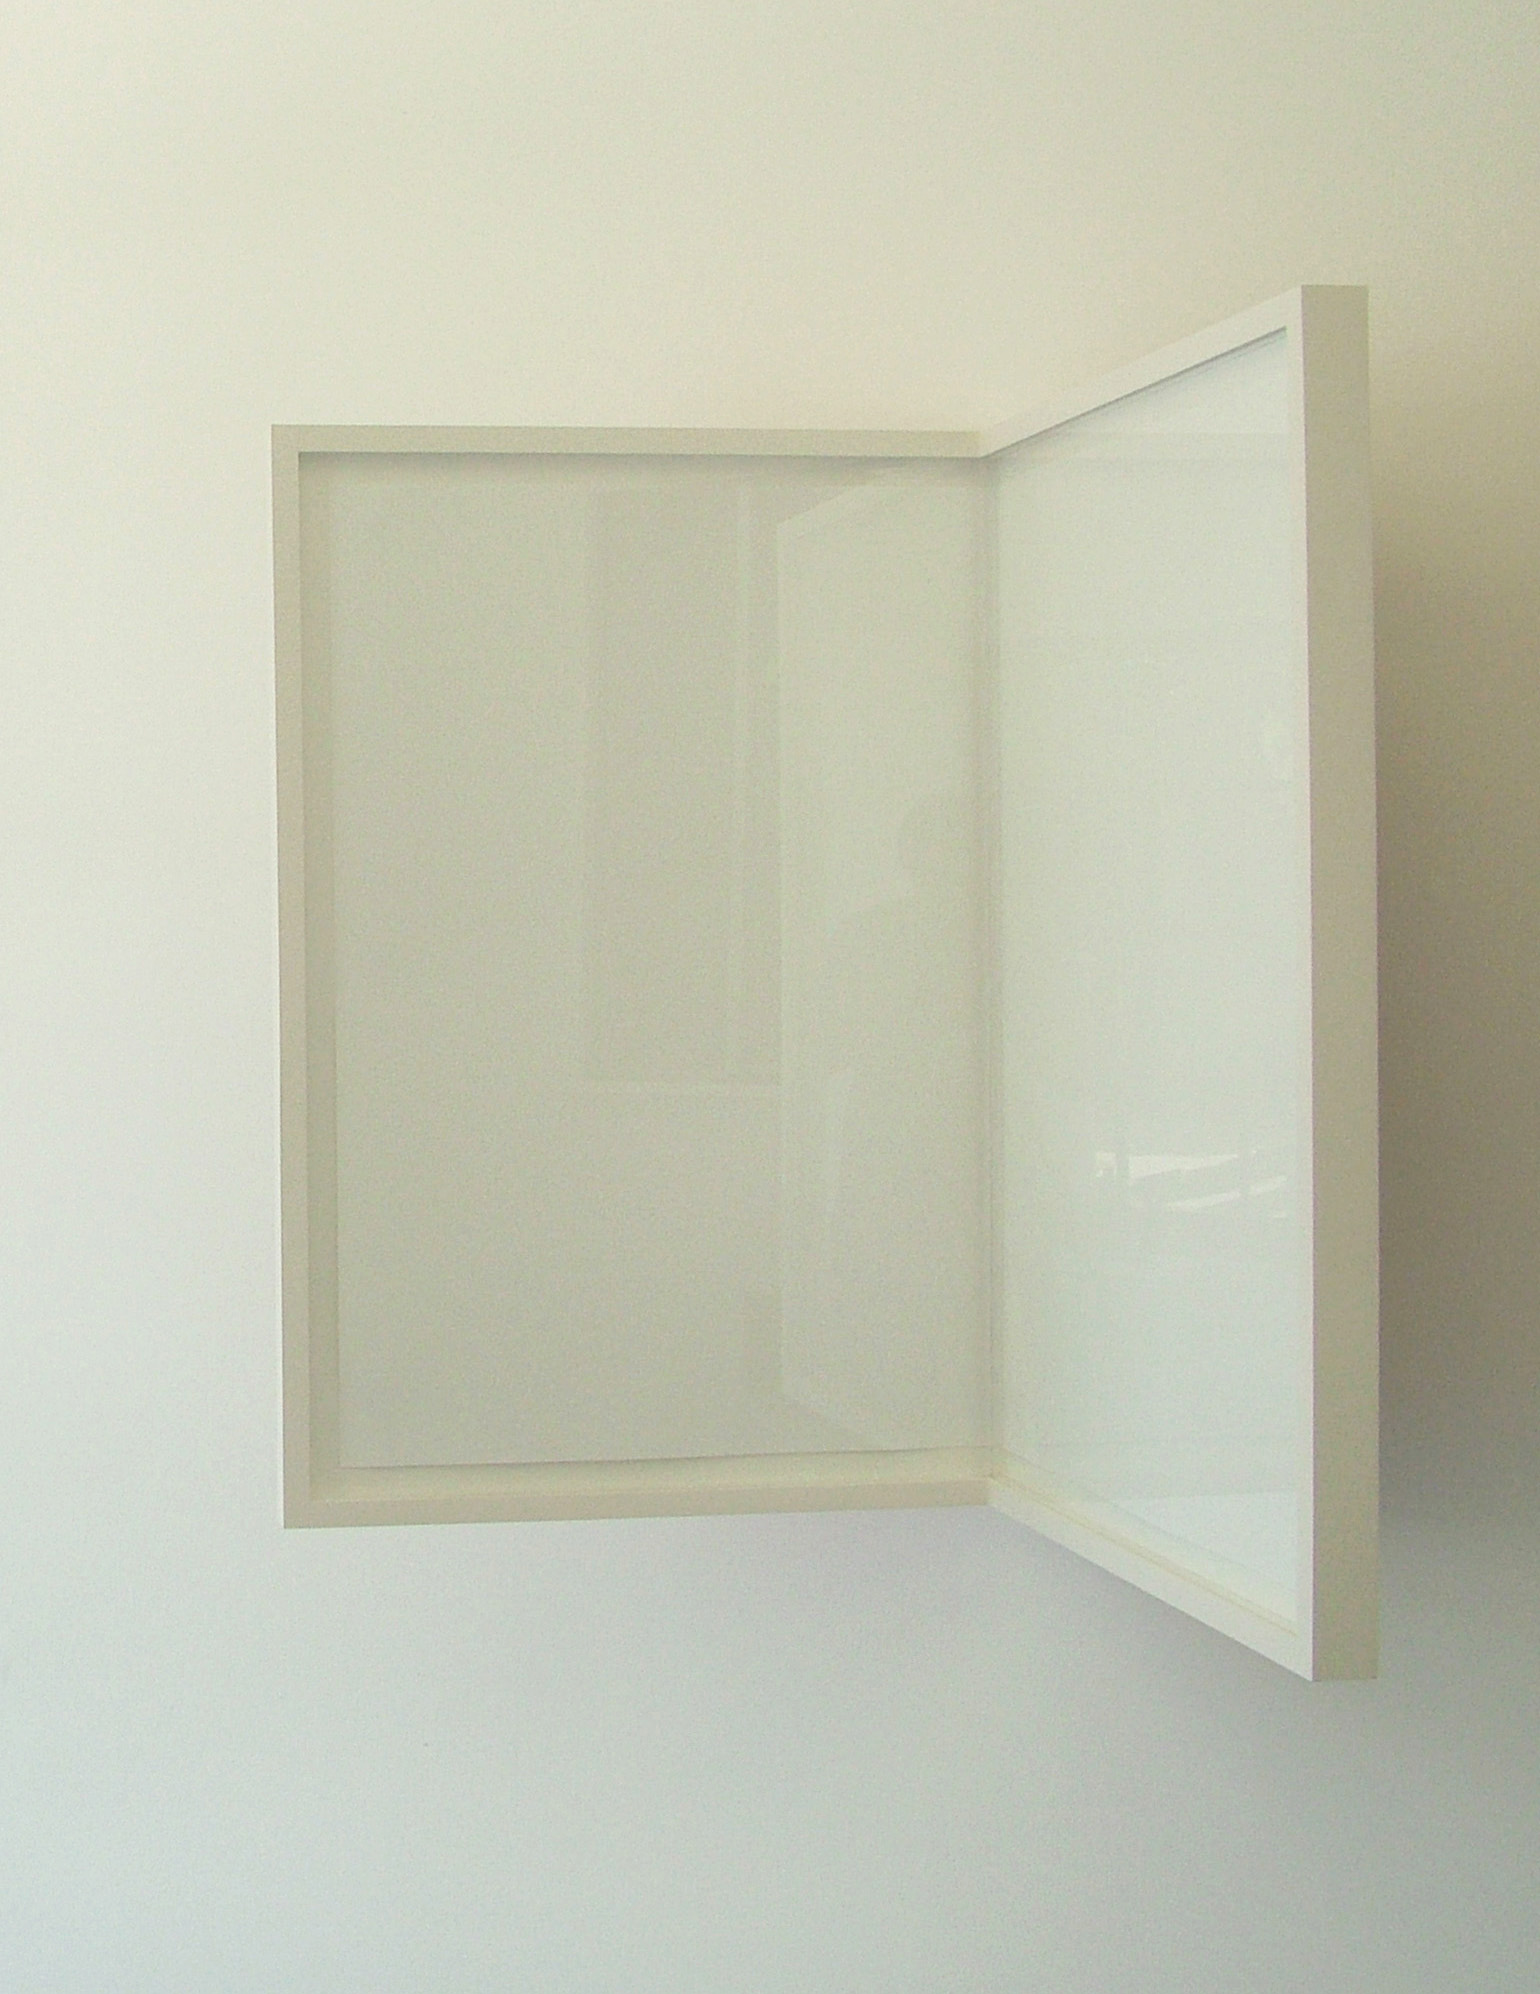 Sheet of Paper / Folded / Framed, 2008